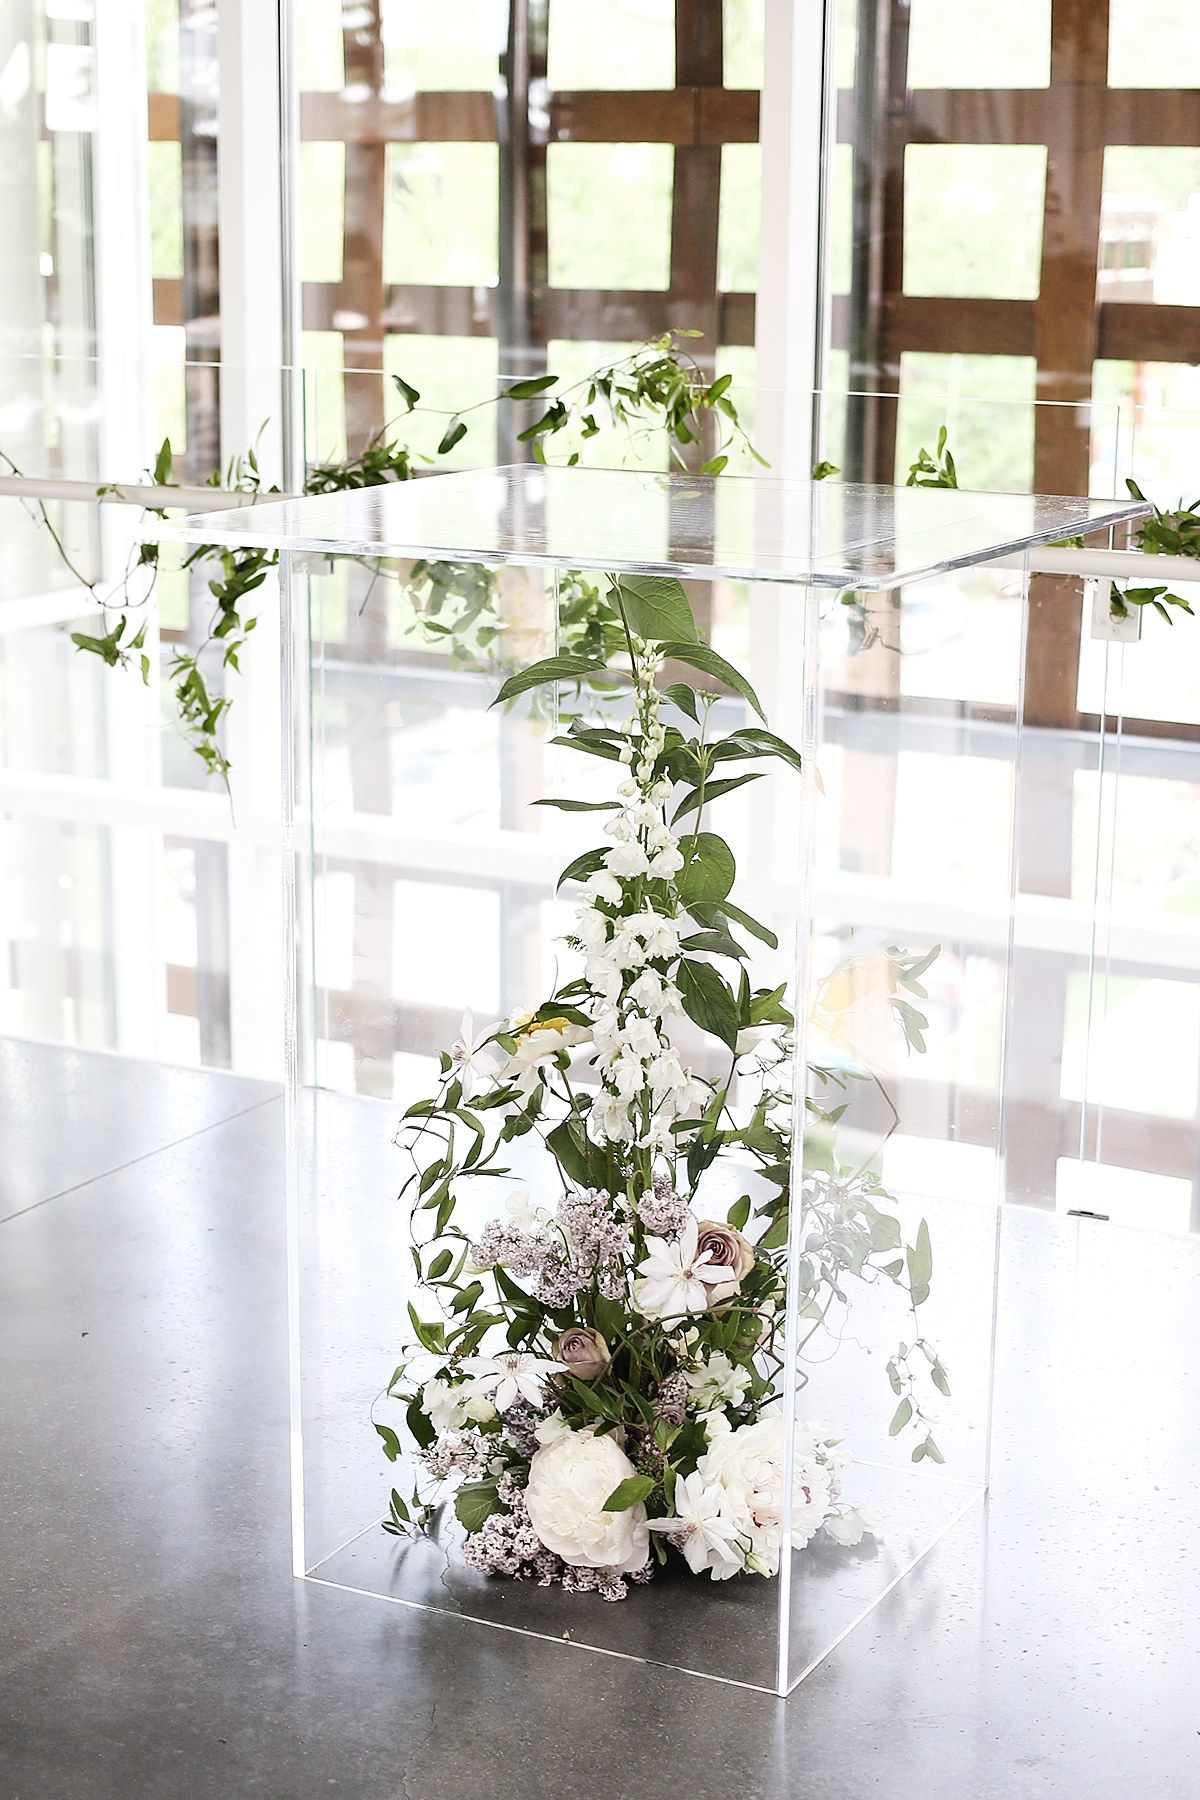 potted ivy with white flowers inserted easy decor for fireplaces or on the terrace banister at laurel hall Wedding ❤ Pinterest